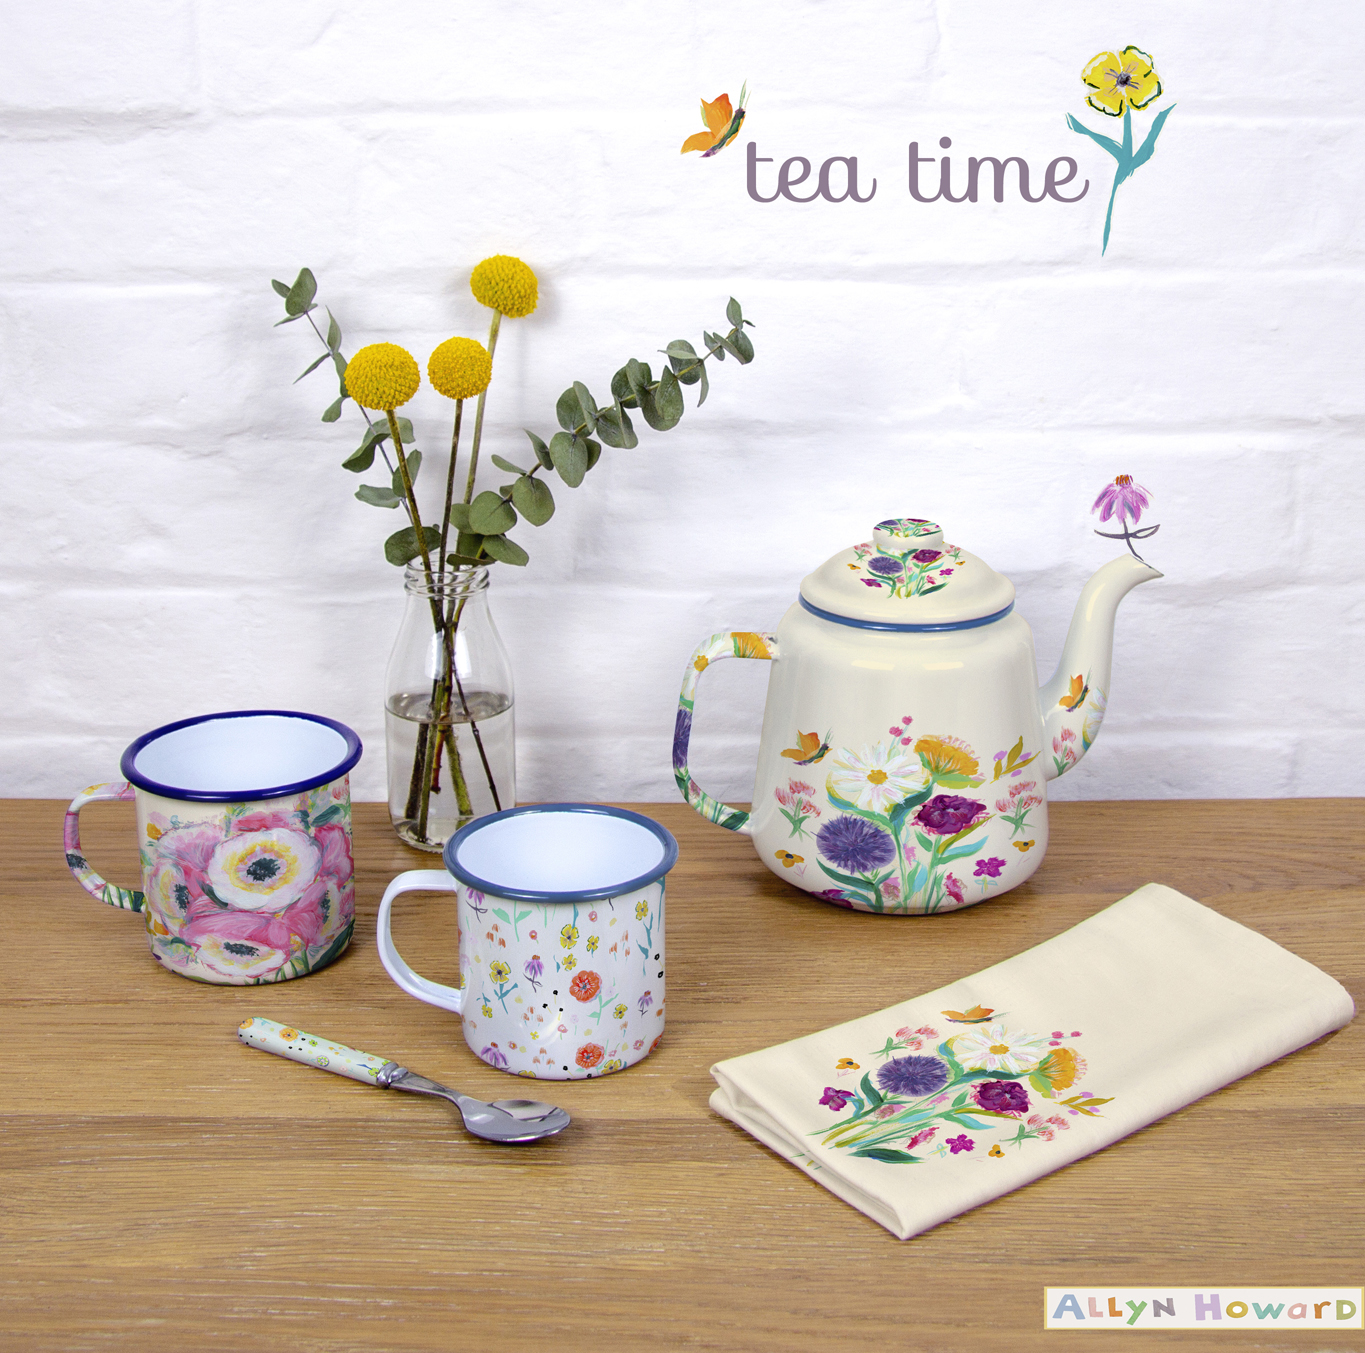 Allyn_Howard_Botanica-teapot_mugs_napkin.jpg